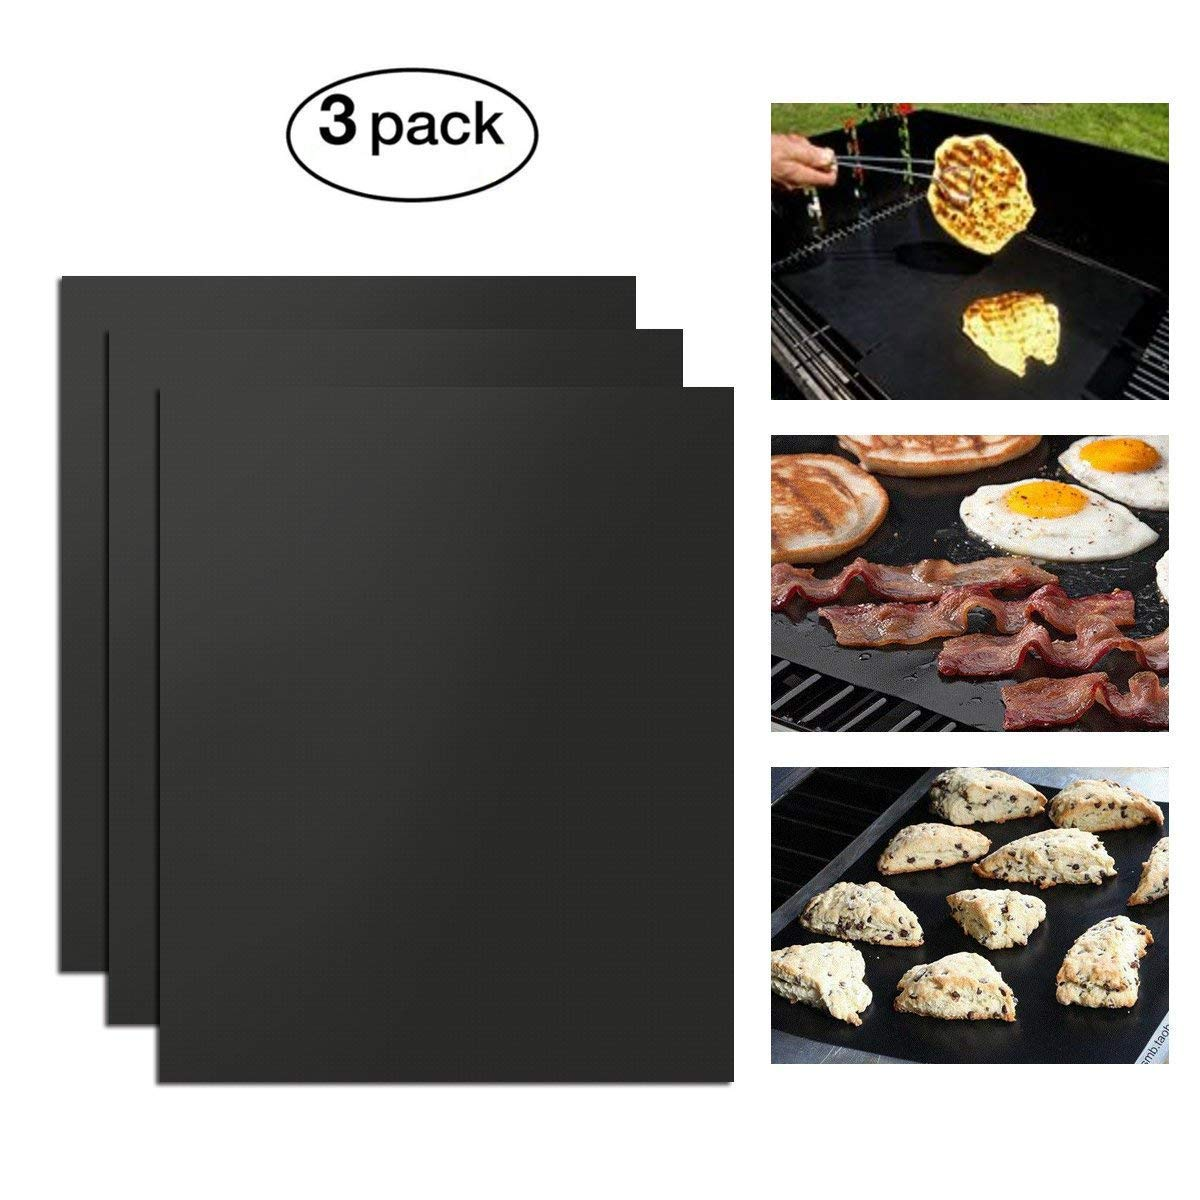 Ideapro Non Stick BBQ Grill Mats Set of 3 - Oven Liner Baking Cooking Mat - Perfect for Baking on Gas, Charcoal, Oven and Electric Grills